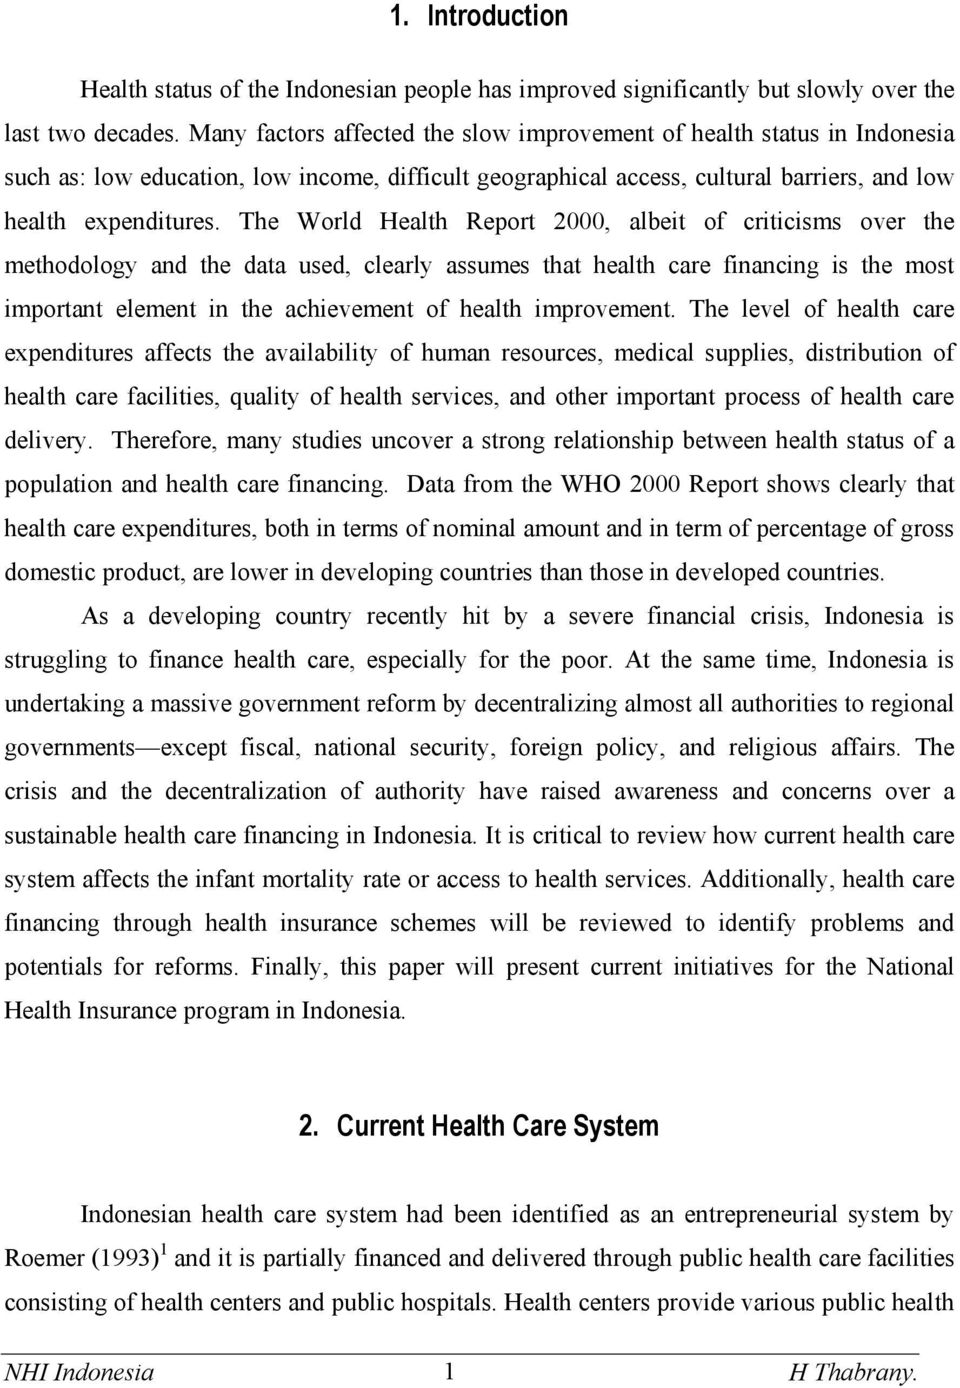 The World Health Report 2000, albeit of criticisms over the methodology and the data used, clearly assumes that health care financing is the most important element in the achievement of health